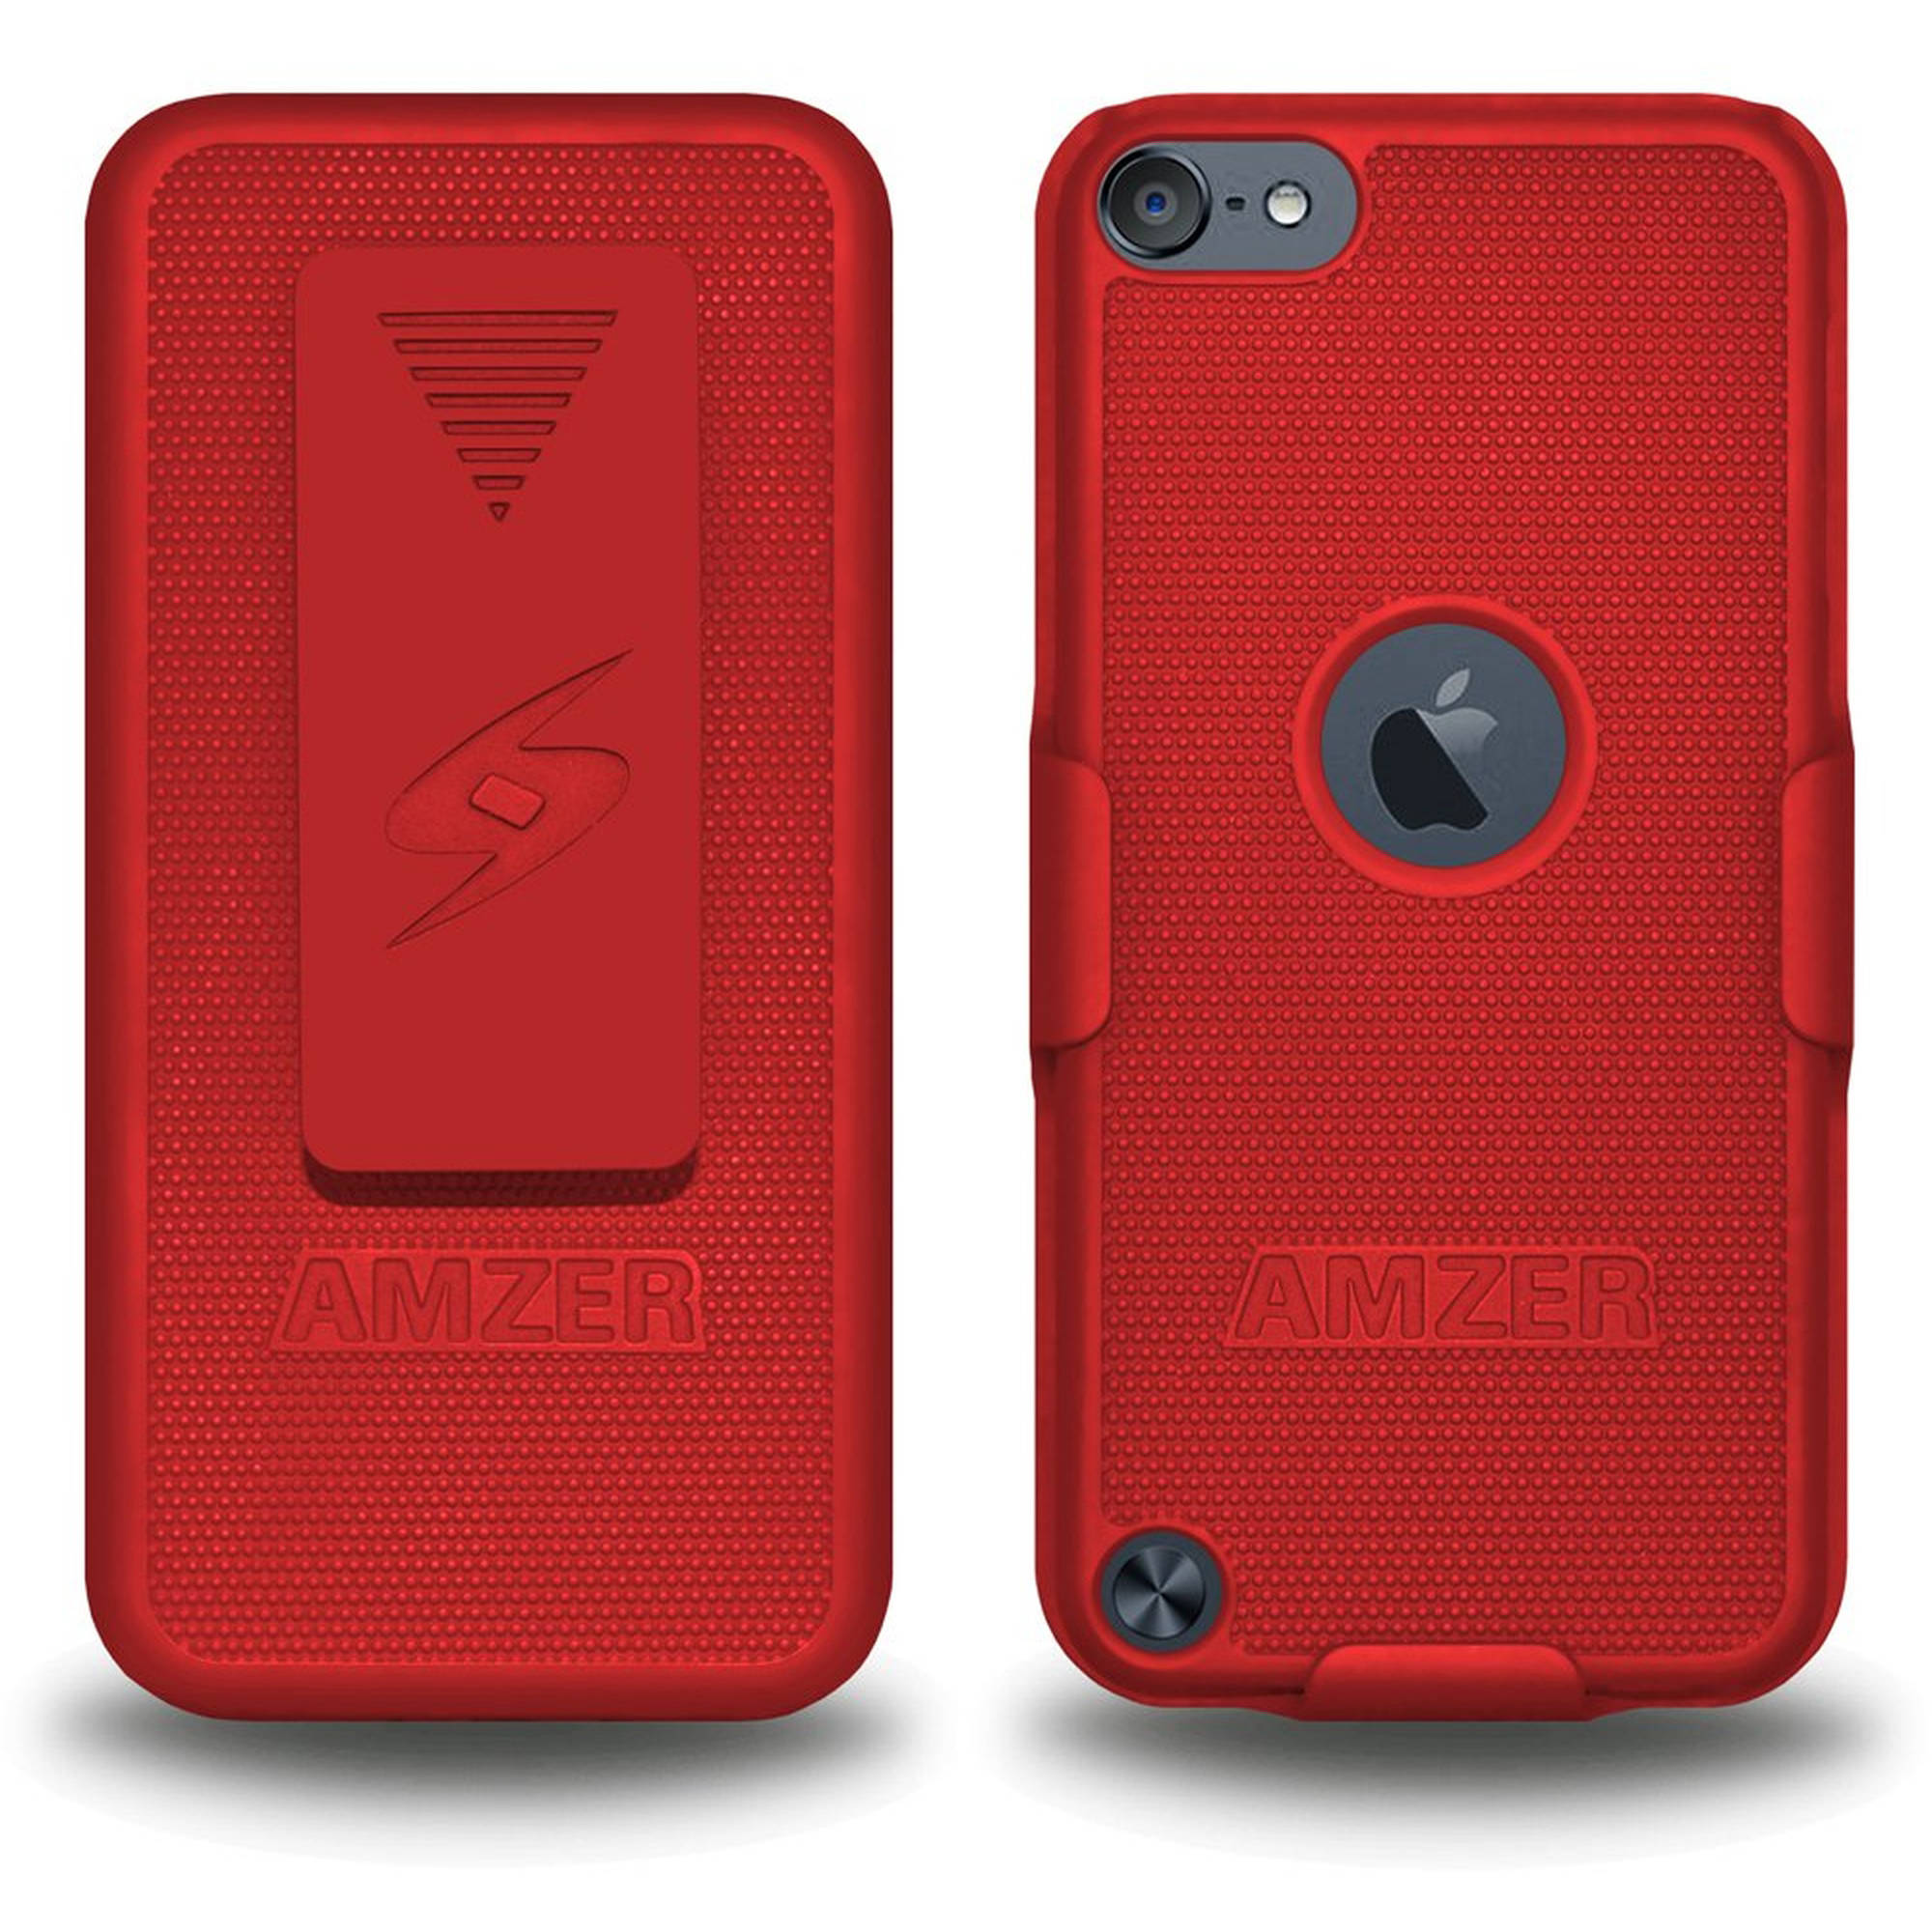 AMZER Shellster Case, Red